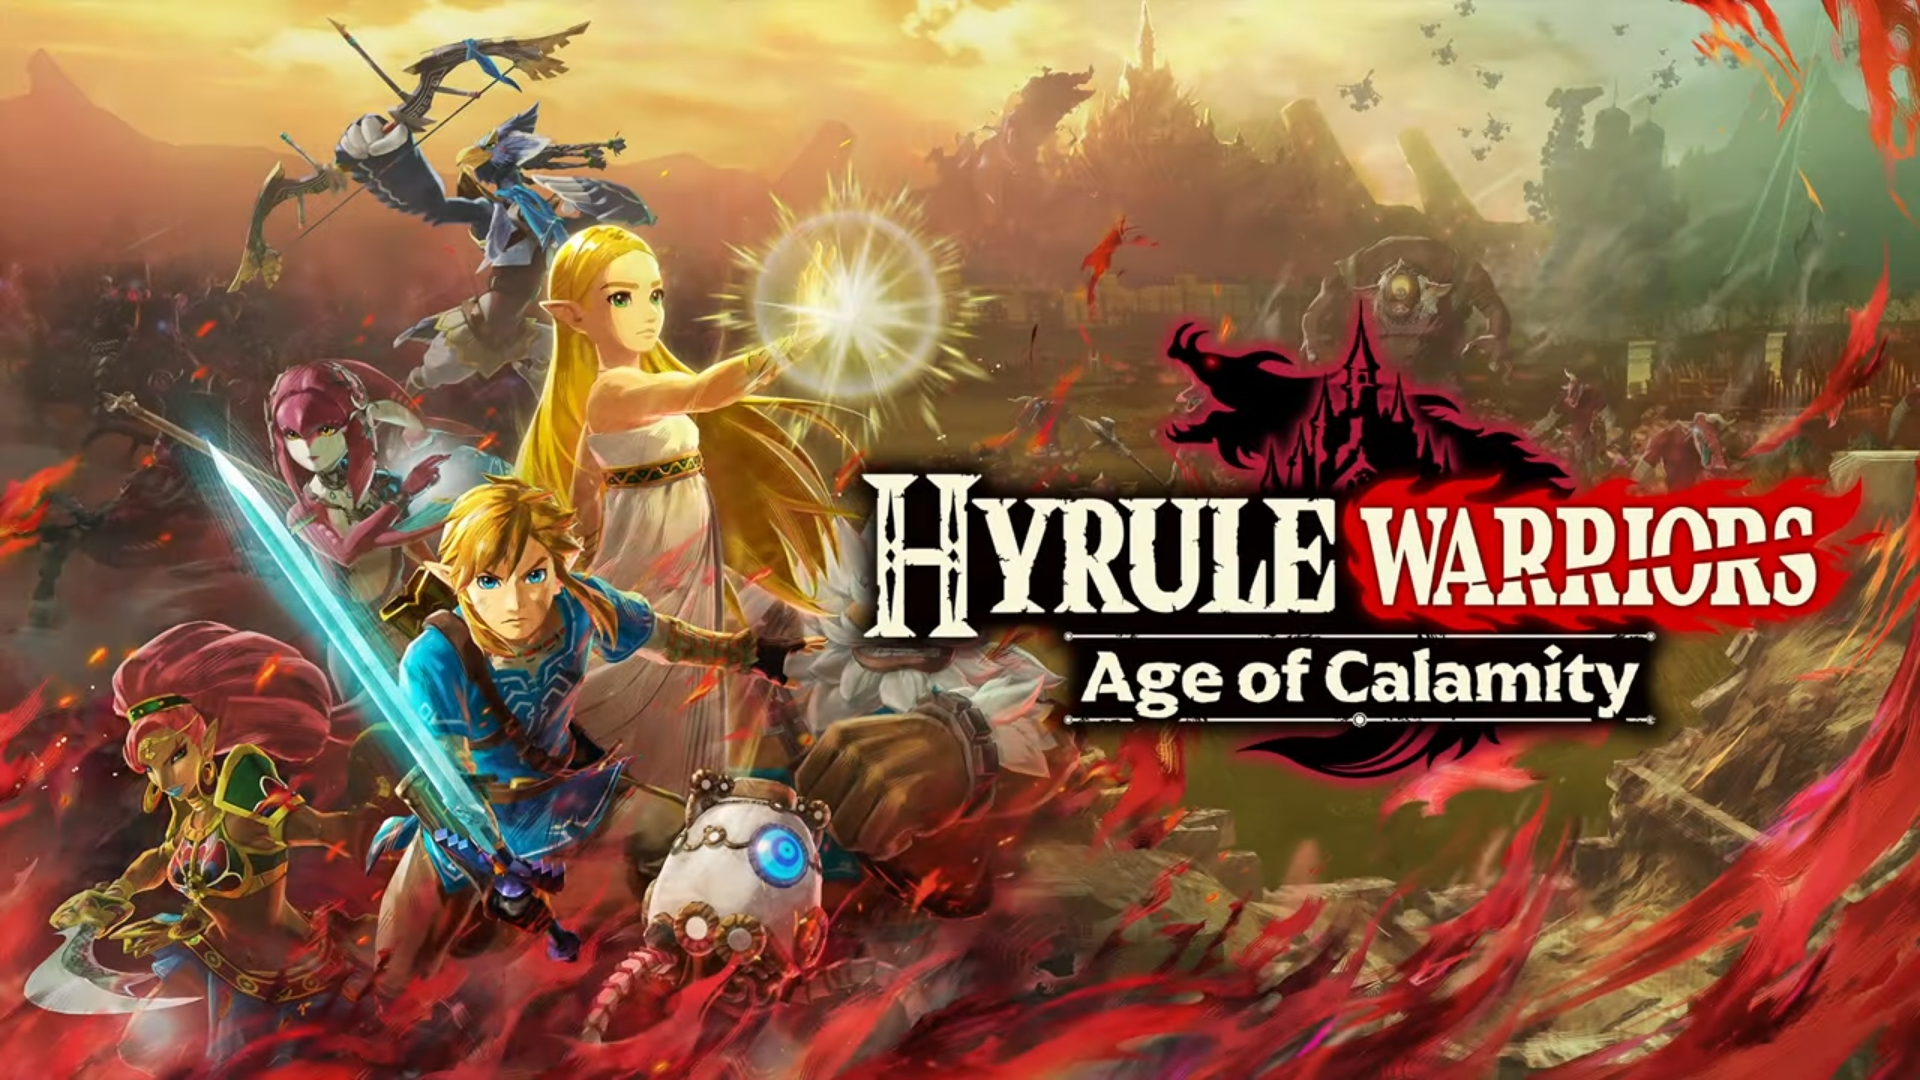 Nintendo Announce Hyrule Warriors Age Of Calamity Set 100 Years Before Breath Of The Wild